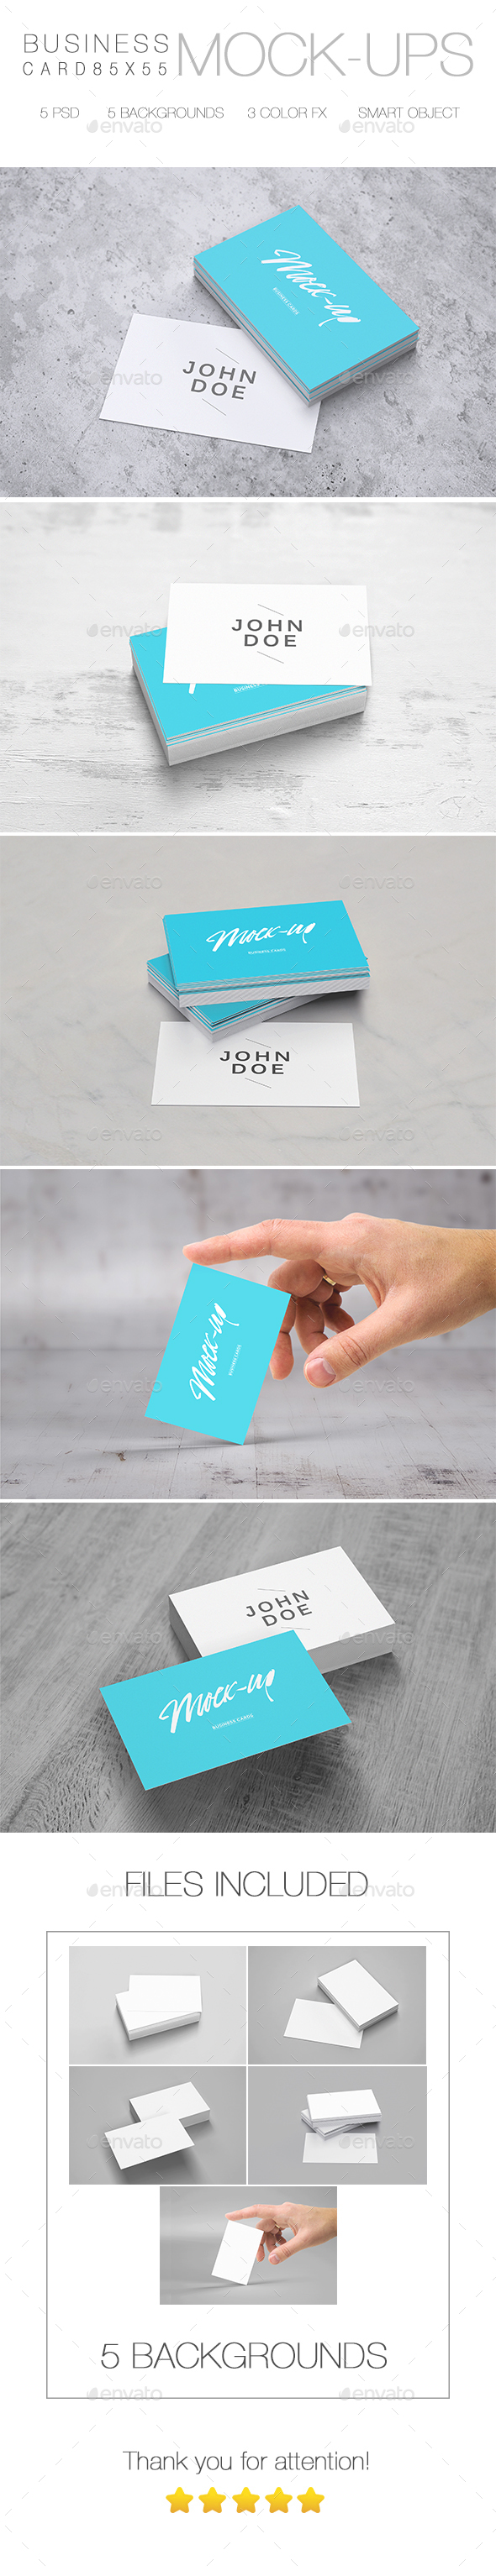 Business Card Mockup 85 x 55 - Business Cards Print